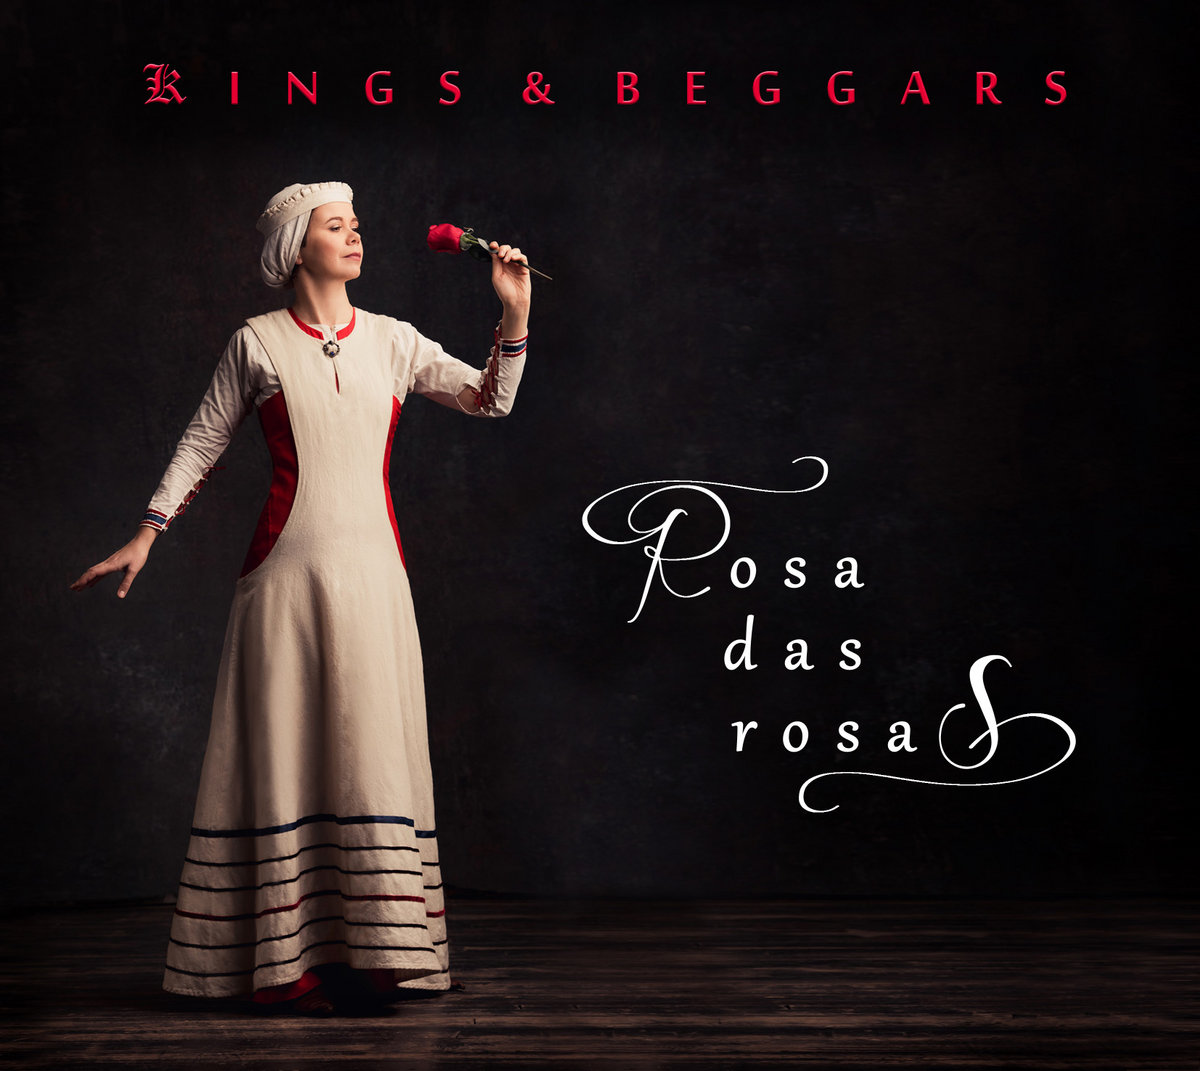 ROSA DAS ROSAS / KINGS AND BEGGARS